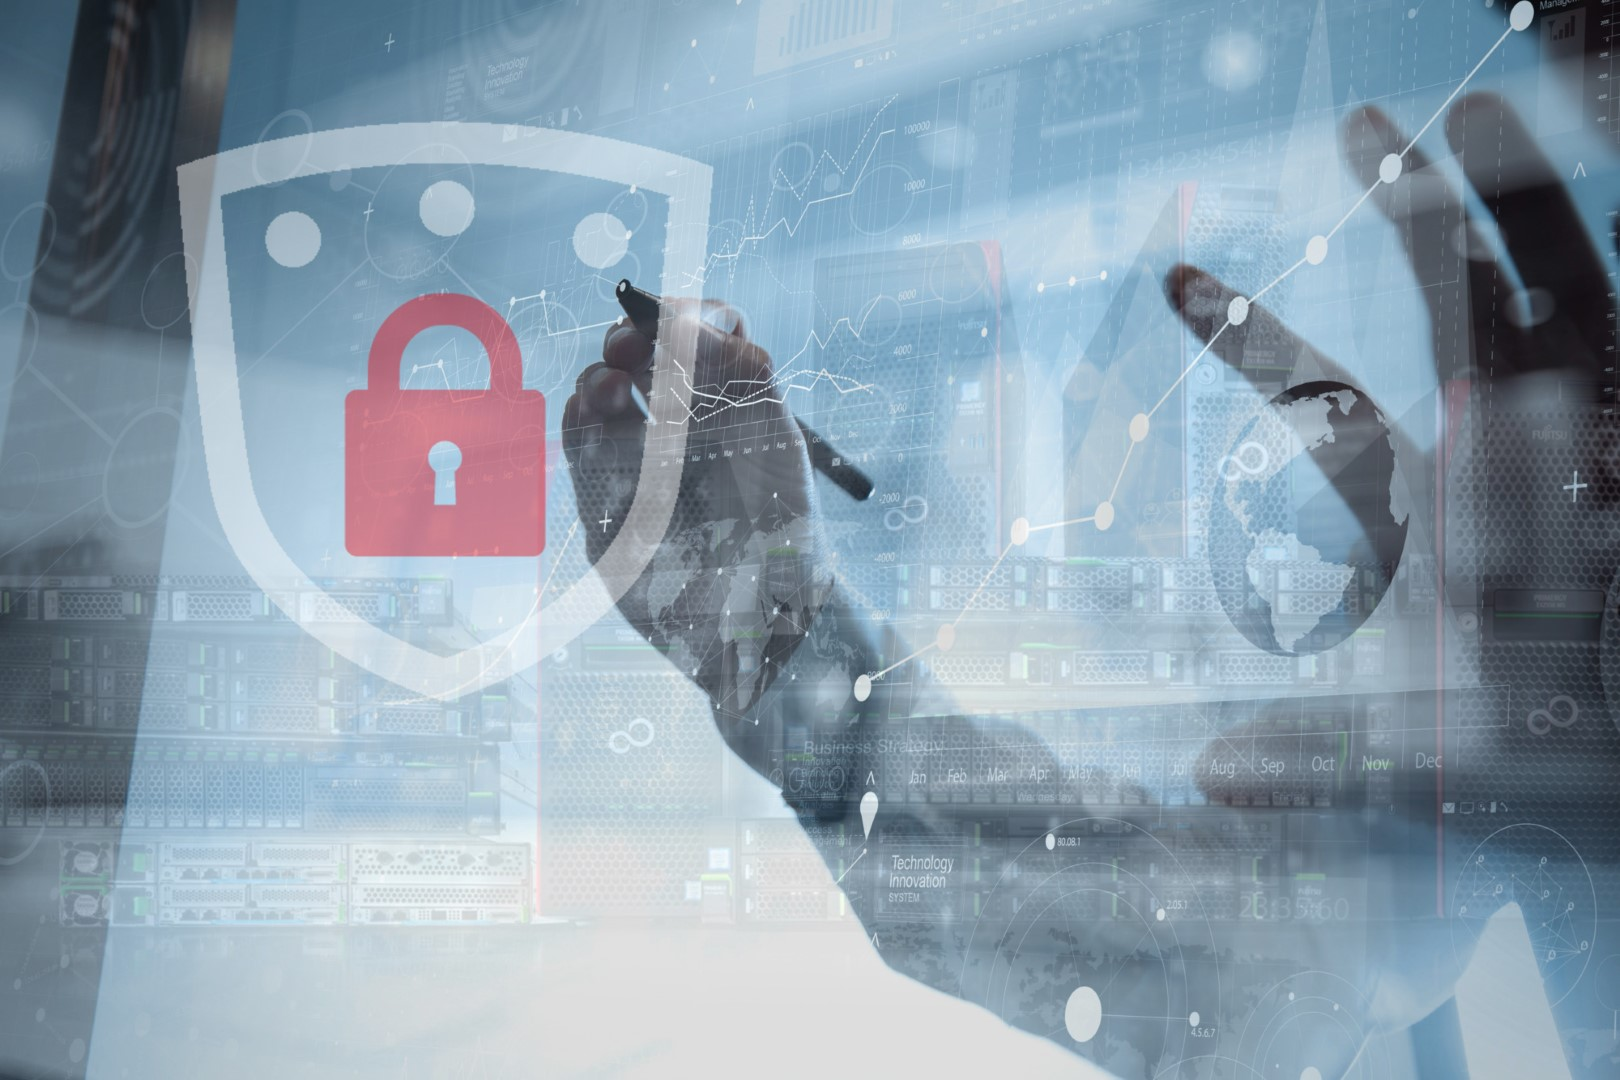 Main visual : Servers are key to prevent security breaches and data theft